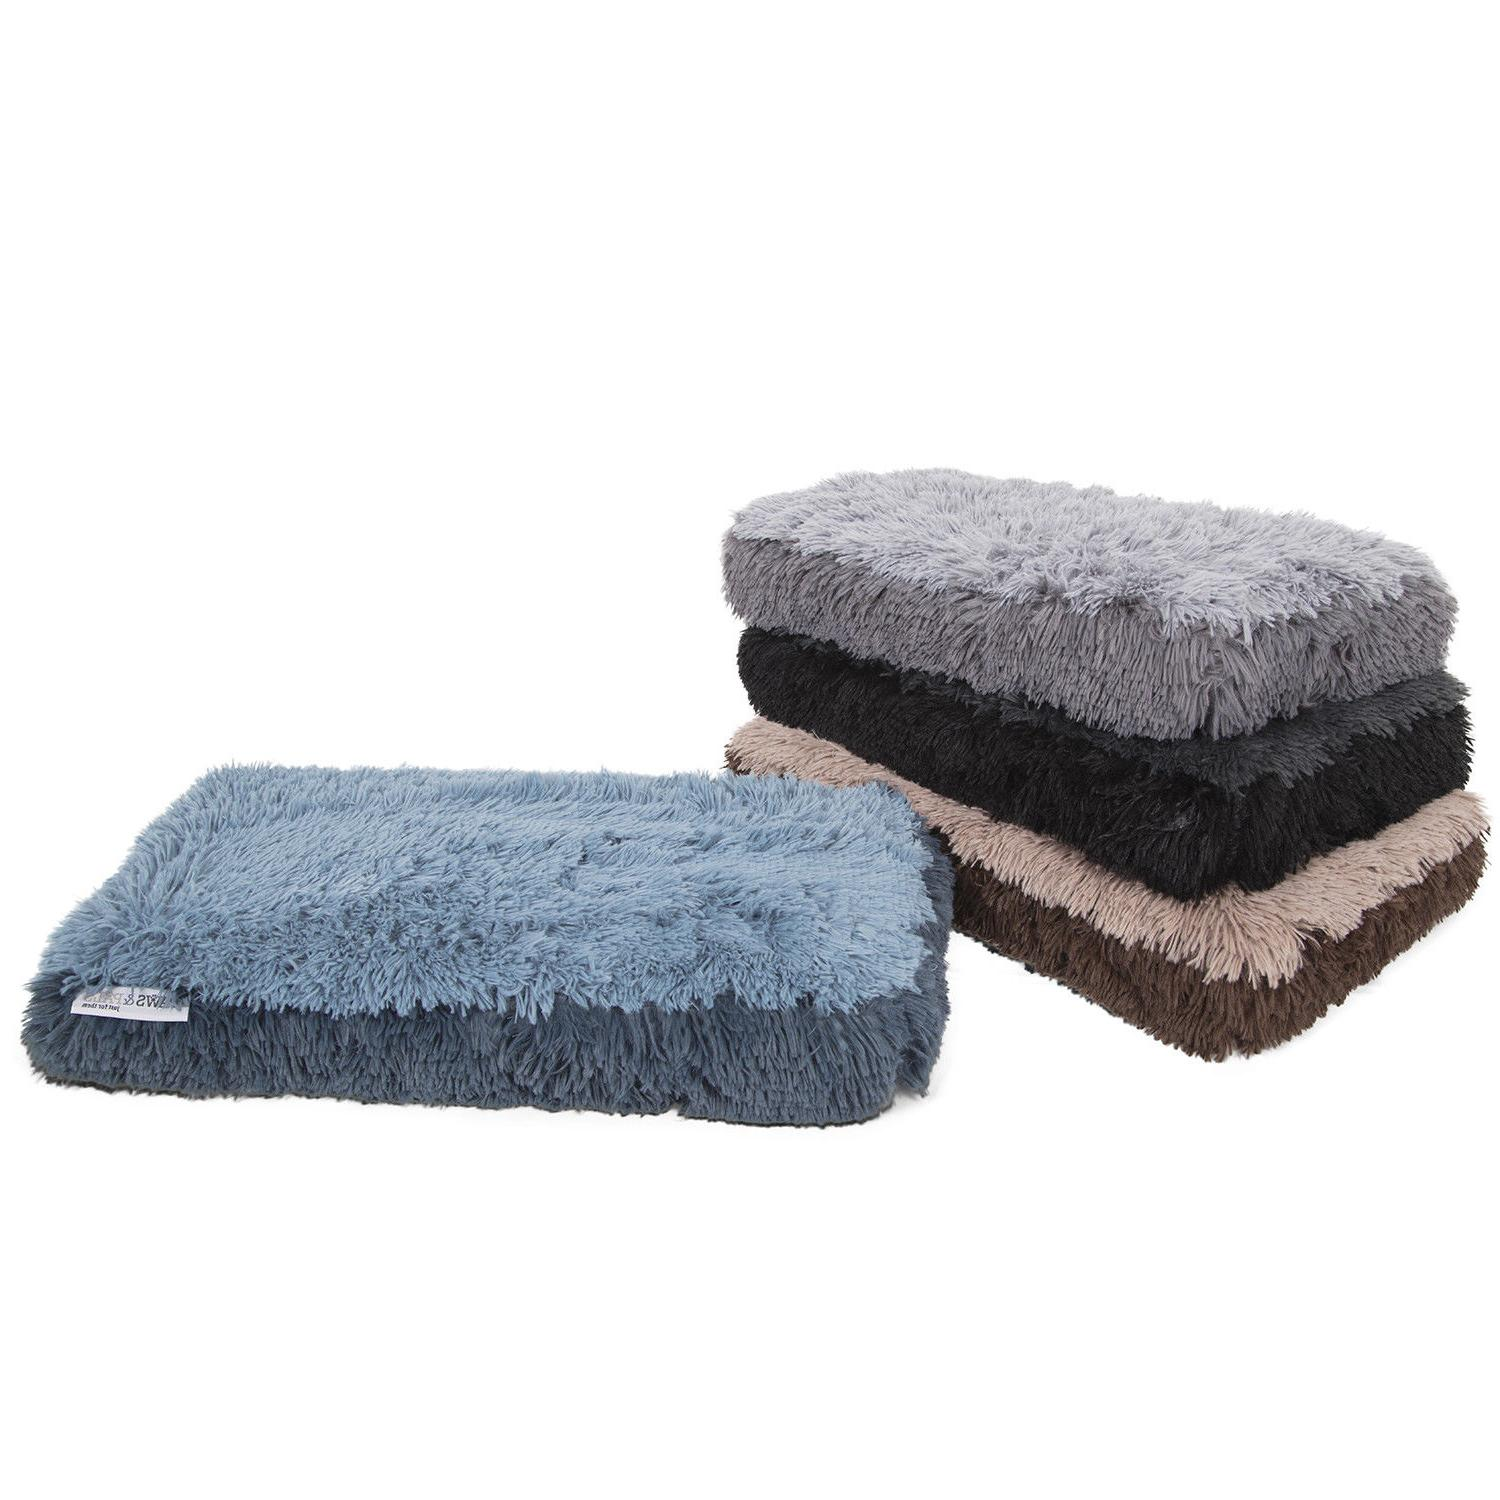 fuzzy dog bed pet lounger deluxe cushion